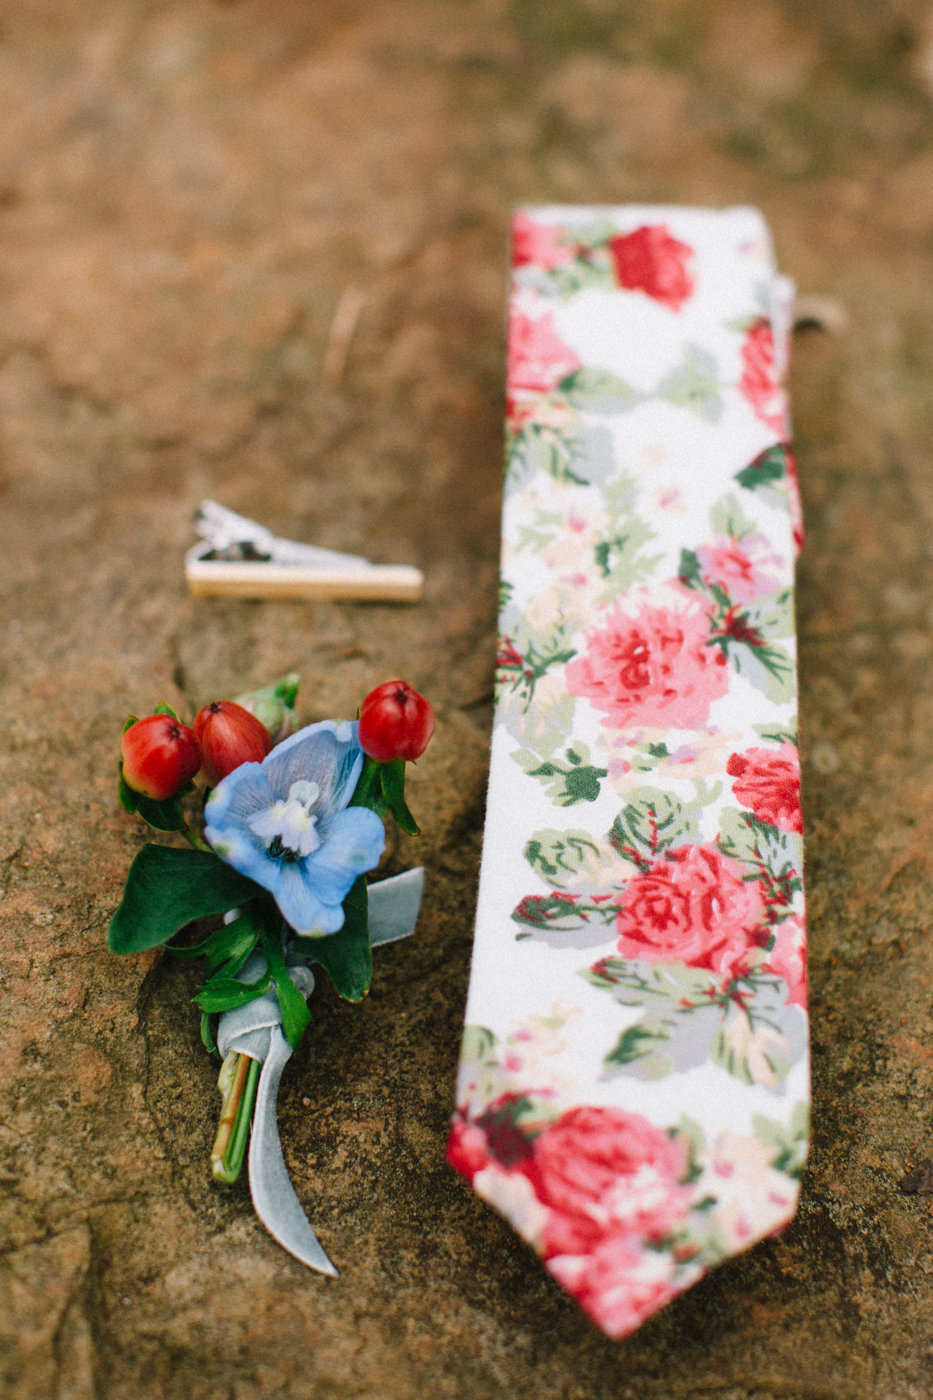 groom accessories - photo by 4 Corners Photography http://ruffledblog.com/backyard-elopement-inspiration-for-valentines-day